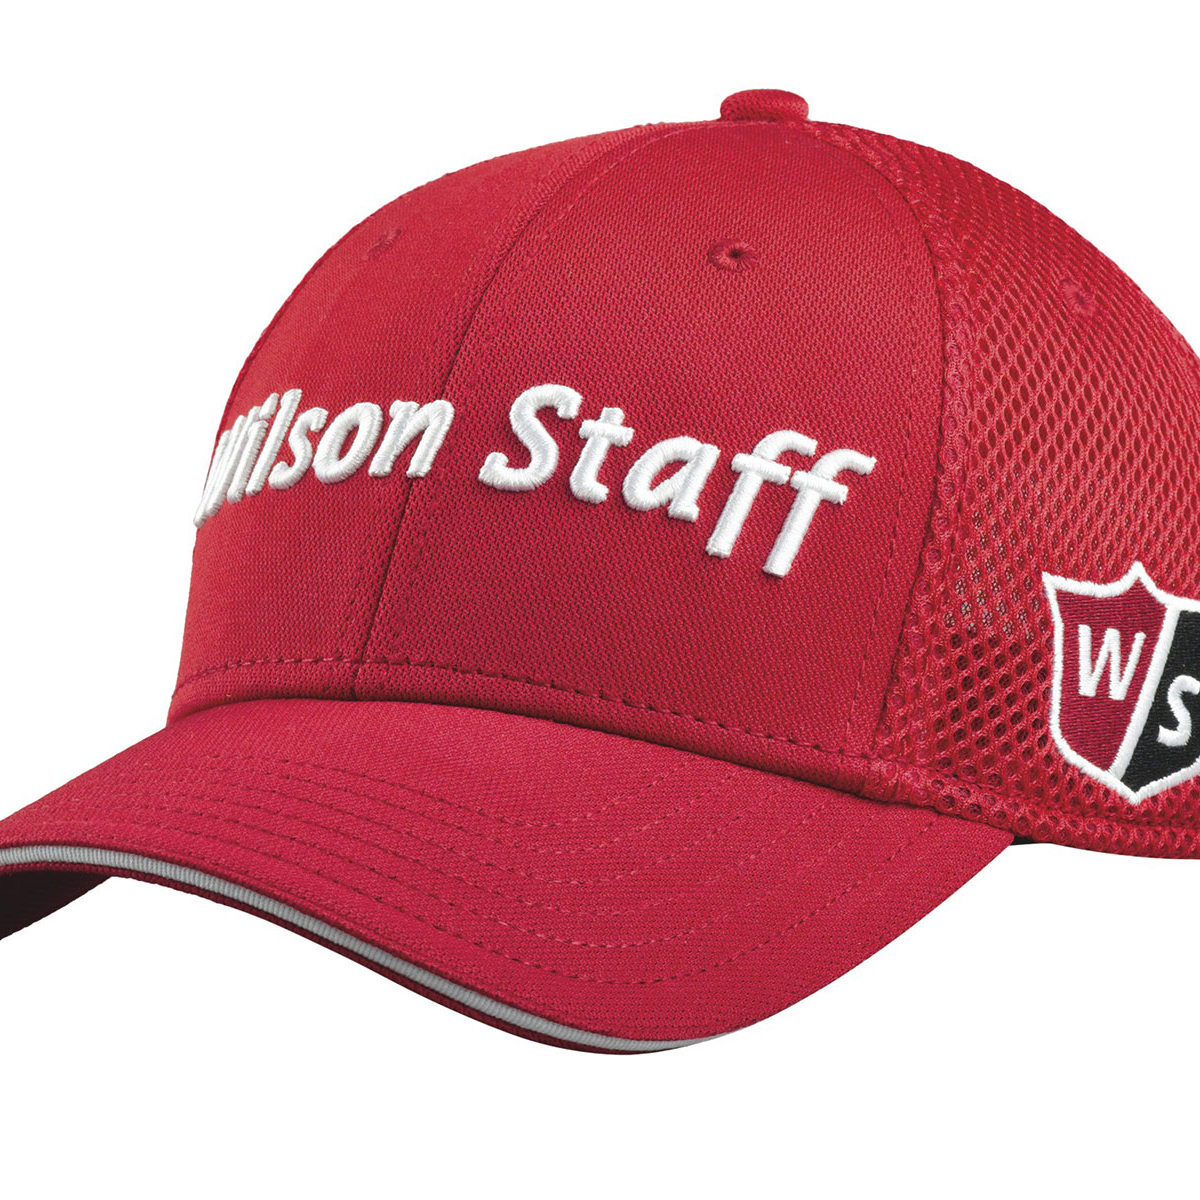 1497e6aba3f Wilson Staff Tour Mesh Cap from american golf